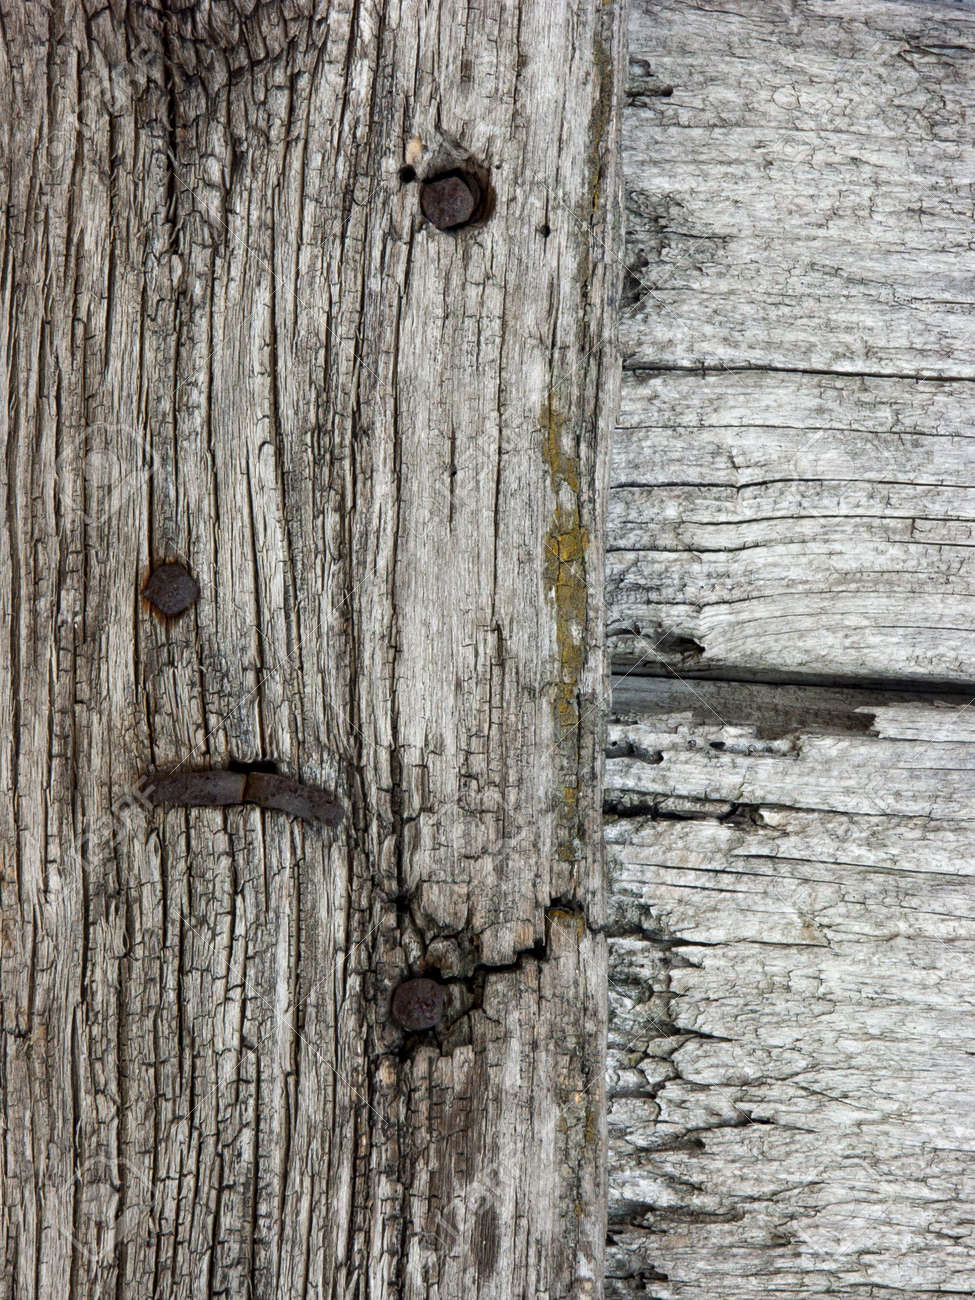 Panels and wooden boards of a rural house, used for doors, windows and cellars, painted and eroded by time. - 135456703